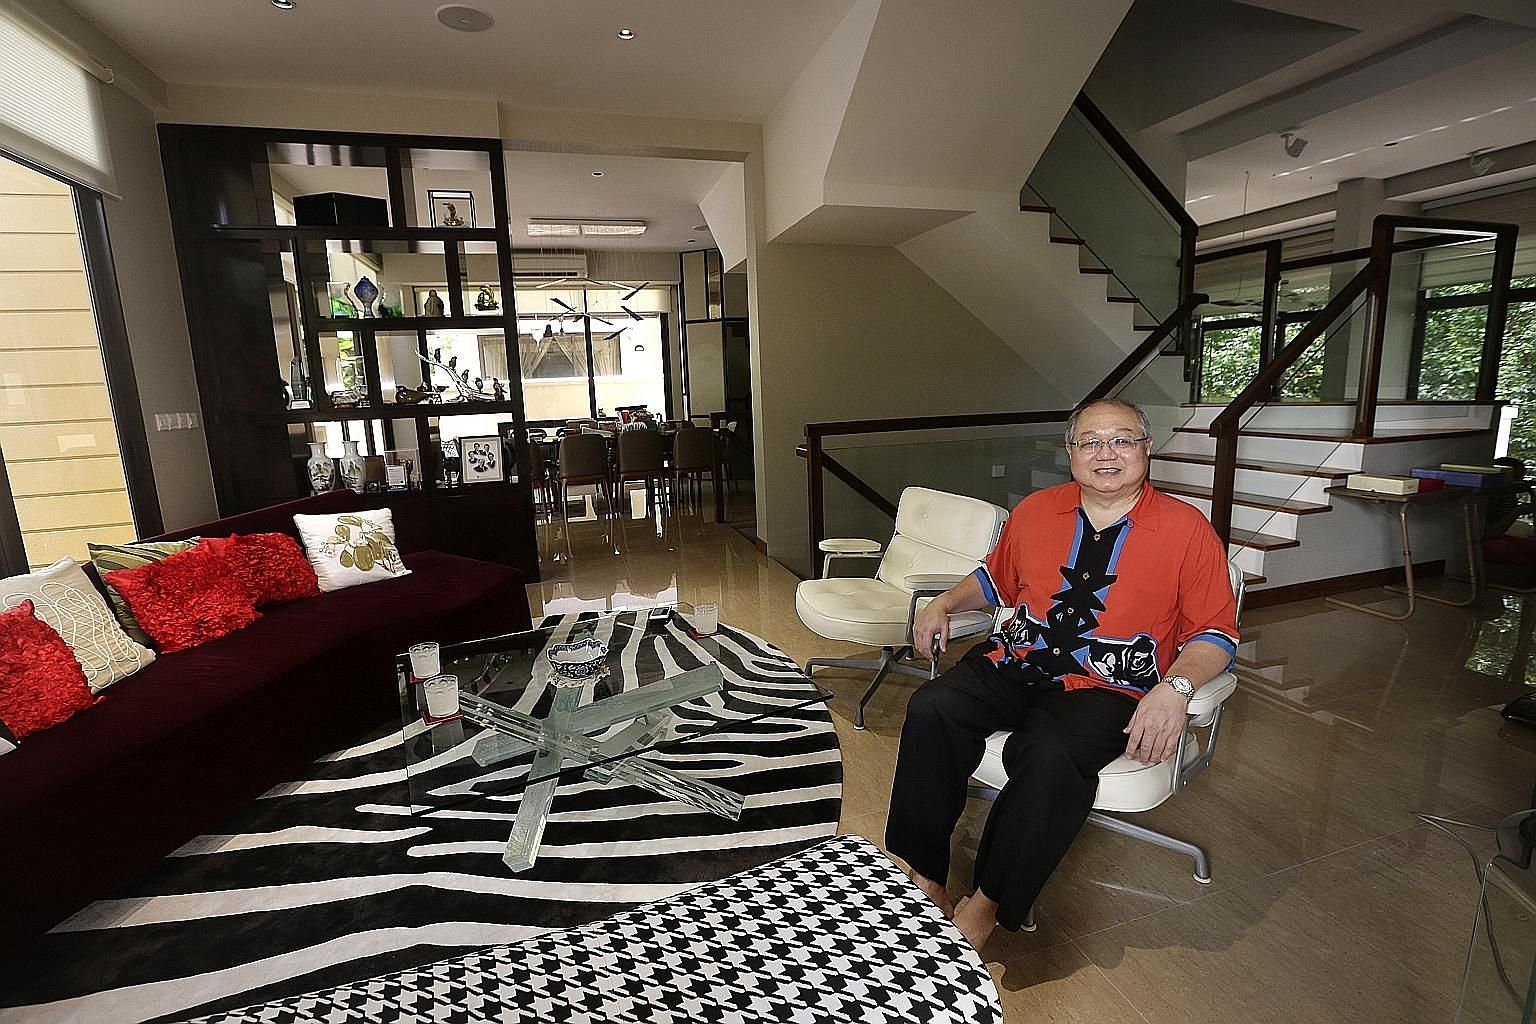 Former group chief financial officer of Neptune Orient Lines Lim How Teck in his living room, where he enjoys entertaining guests. The wall dividing the two houses was removed to open into another dining area. He moved into the cluster housing develo